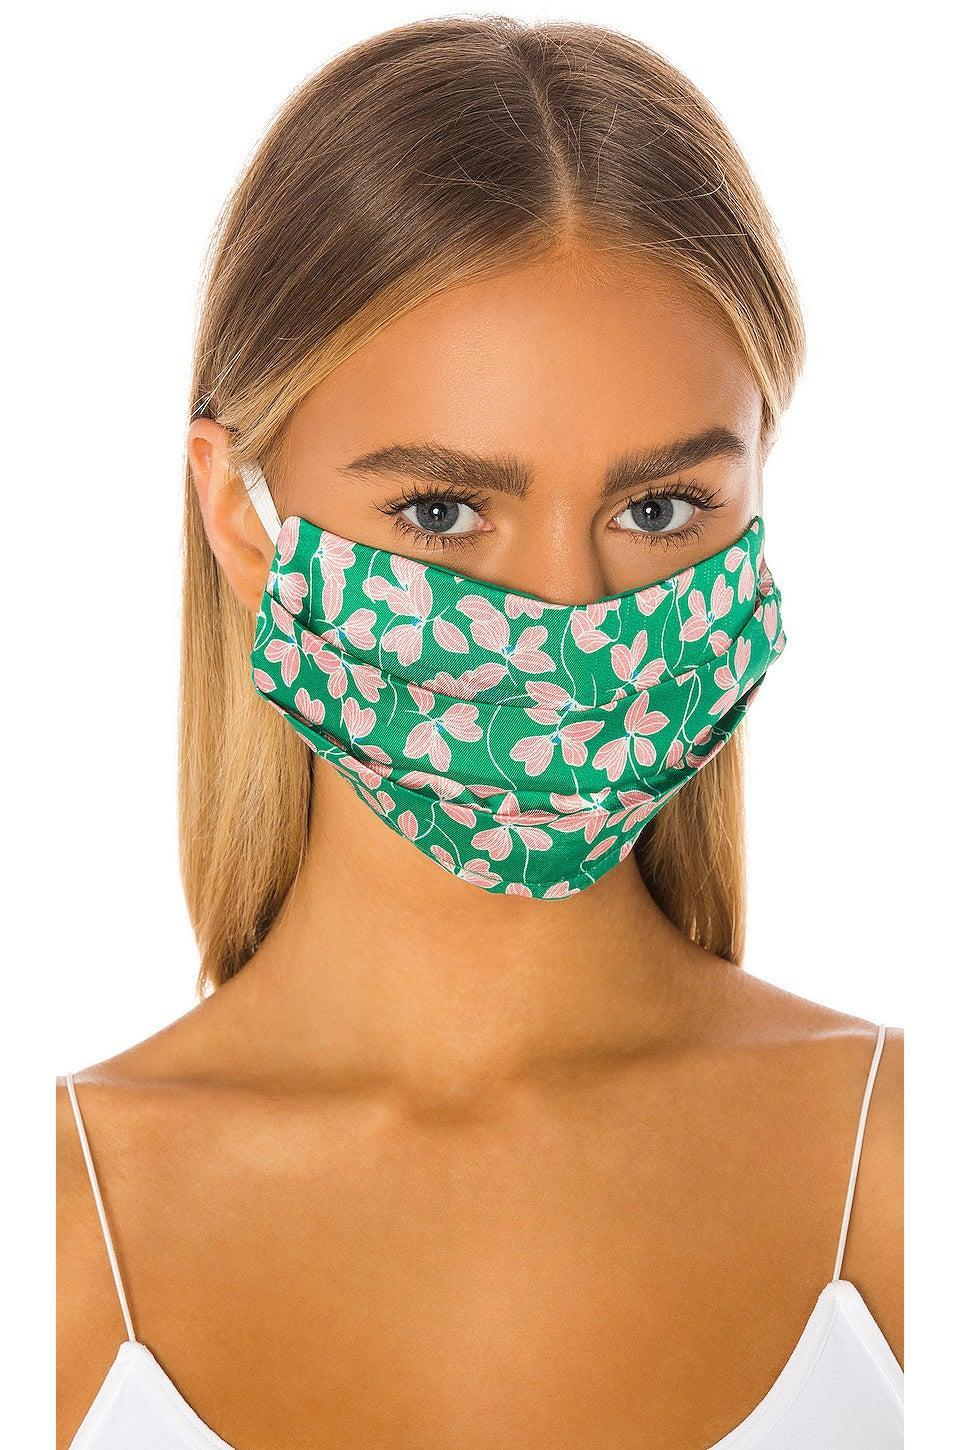 """<h3><a href=""""https://fave.co/2SDMt3u"""" rel=""""nofollow noopener"""" target=""""_blank"""" data-ylk=""""slk:Karina Grimaldi Amanda Face Mask"""" class=""""link rapid-noclick-resp"""">Karina Grimaldi Amanda Face Mask</a></h3> <br>Also available for pre-order on Revolve are double-layered face masks with a viscose satin-twill overlay by Karina Grimald. The estimated delivery date for this style is May 18, and the red and green floating leaf motif feels like it's fresh off a tropical island — where you'll find us mentally residing for the remainder of the week. <br><br><strong>Karina Grimaldi</strong> Amanda Face Mask, $, available at <a href=""""https://go.skimresources.com/?id=30283X879131&url=https%3A%2F%2Ffave.co%2F2SDMt3u"""" rel=""""nofollow noopener"""" target=""""_blank"""" data-ylk=""""slk:Revolve"""" class=""""link rapid-noclick-resp"""">Revolve</a><br>"""